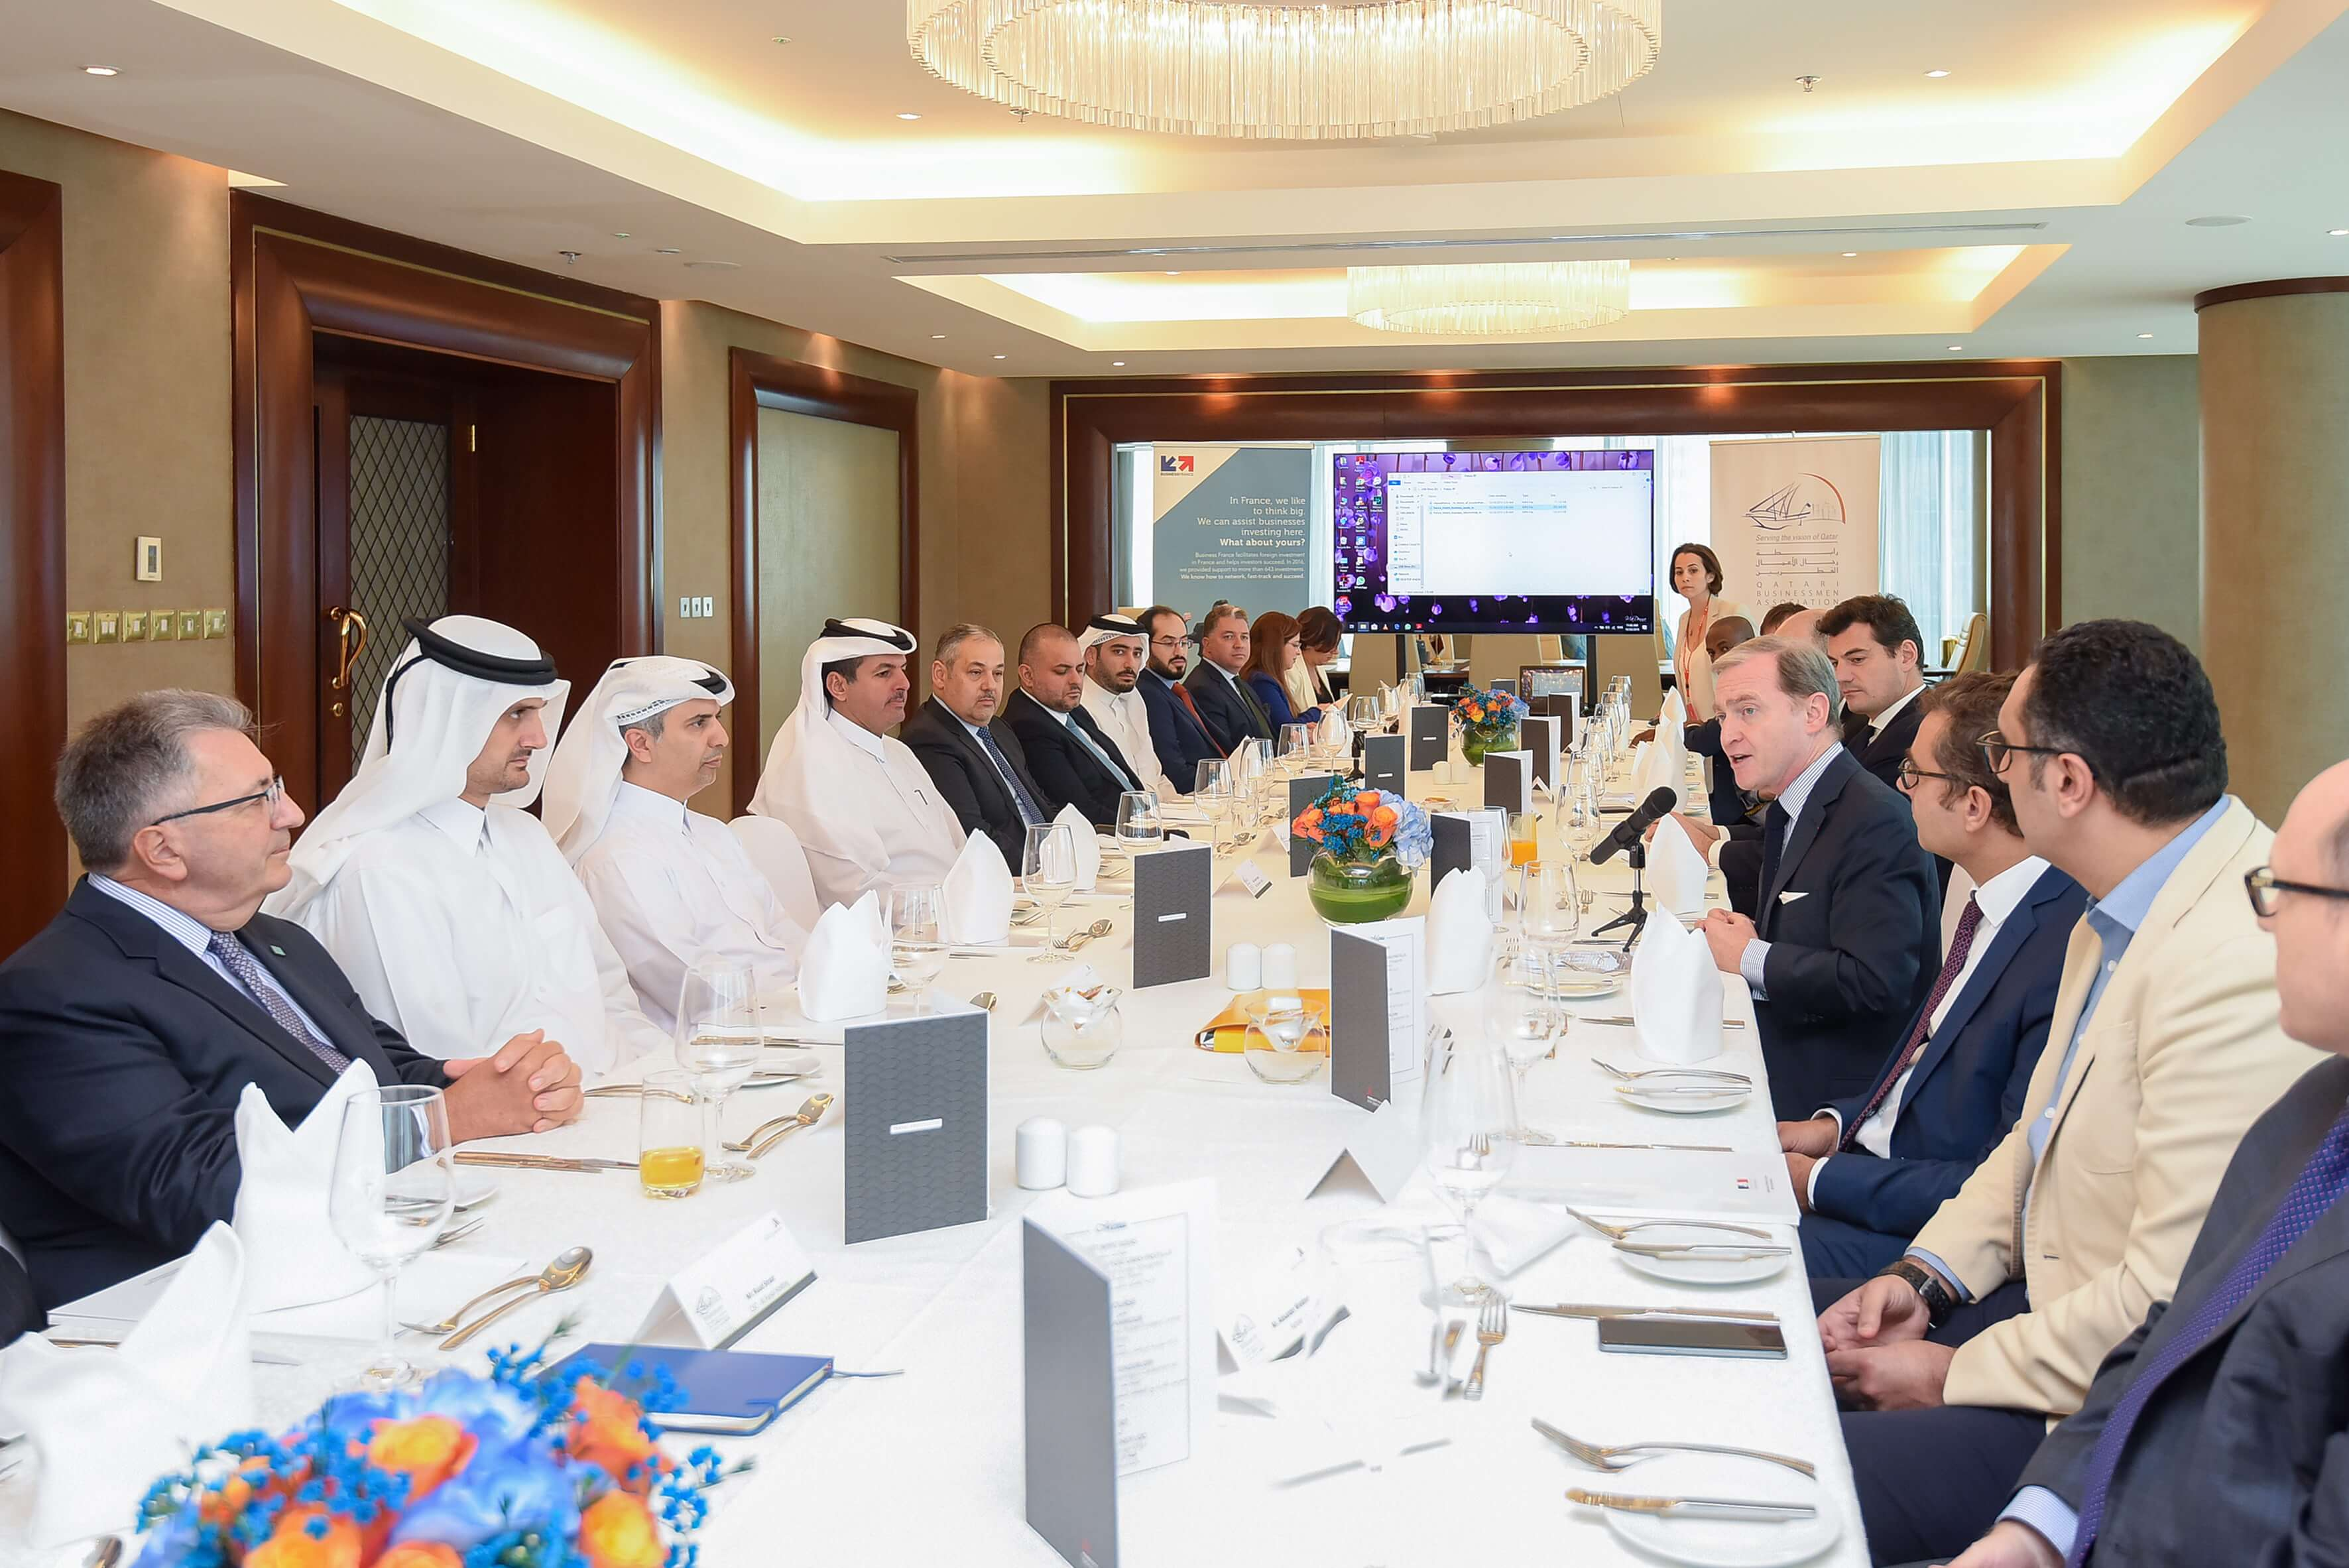 QBA Roundtable with French Investment Funds in cooperation with the French Embassy in Doha